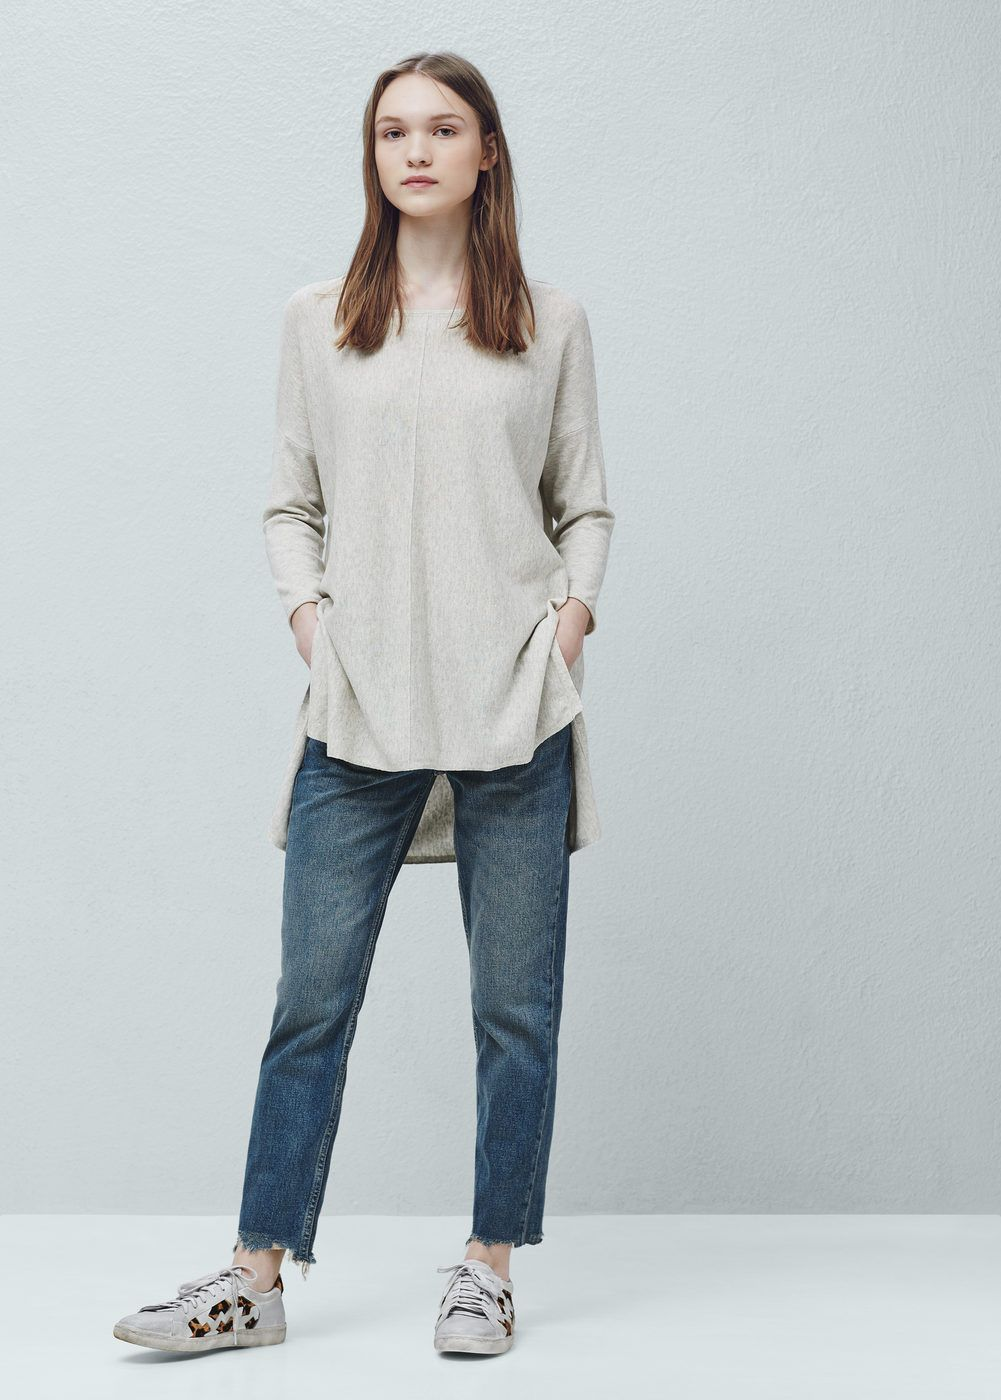 Cotton sweater - Women | Cotton sweater, Cotton and Casual chic